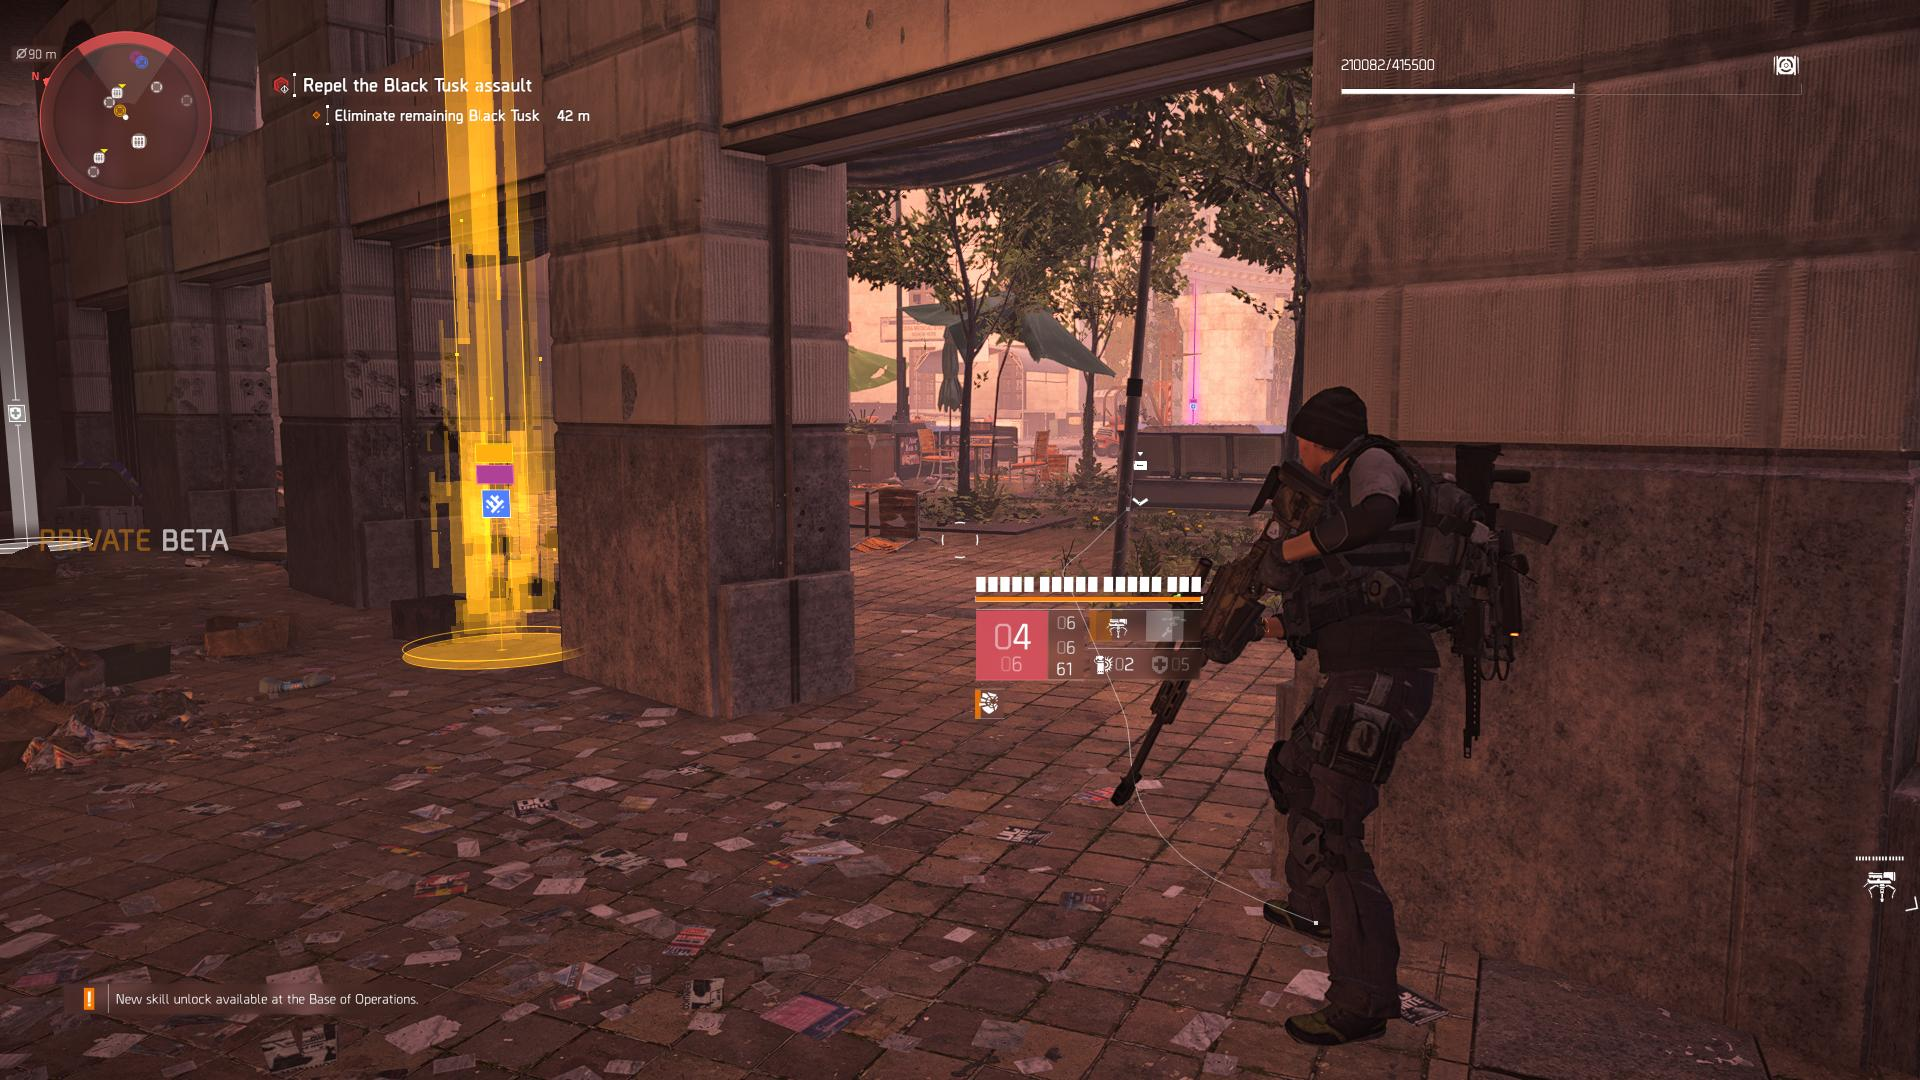 Tom Clancy's The Division 2: Soloing the Black Tusks in the